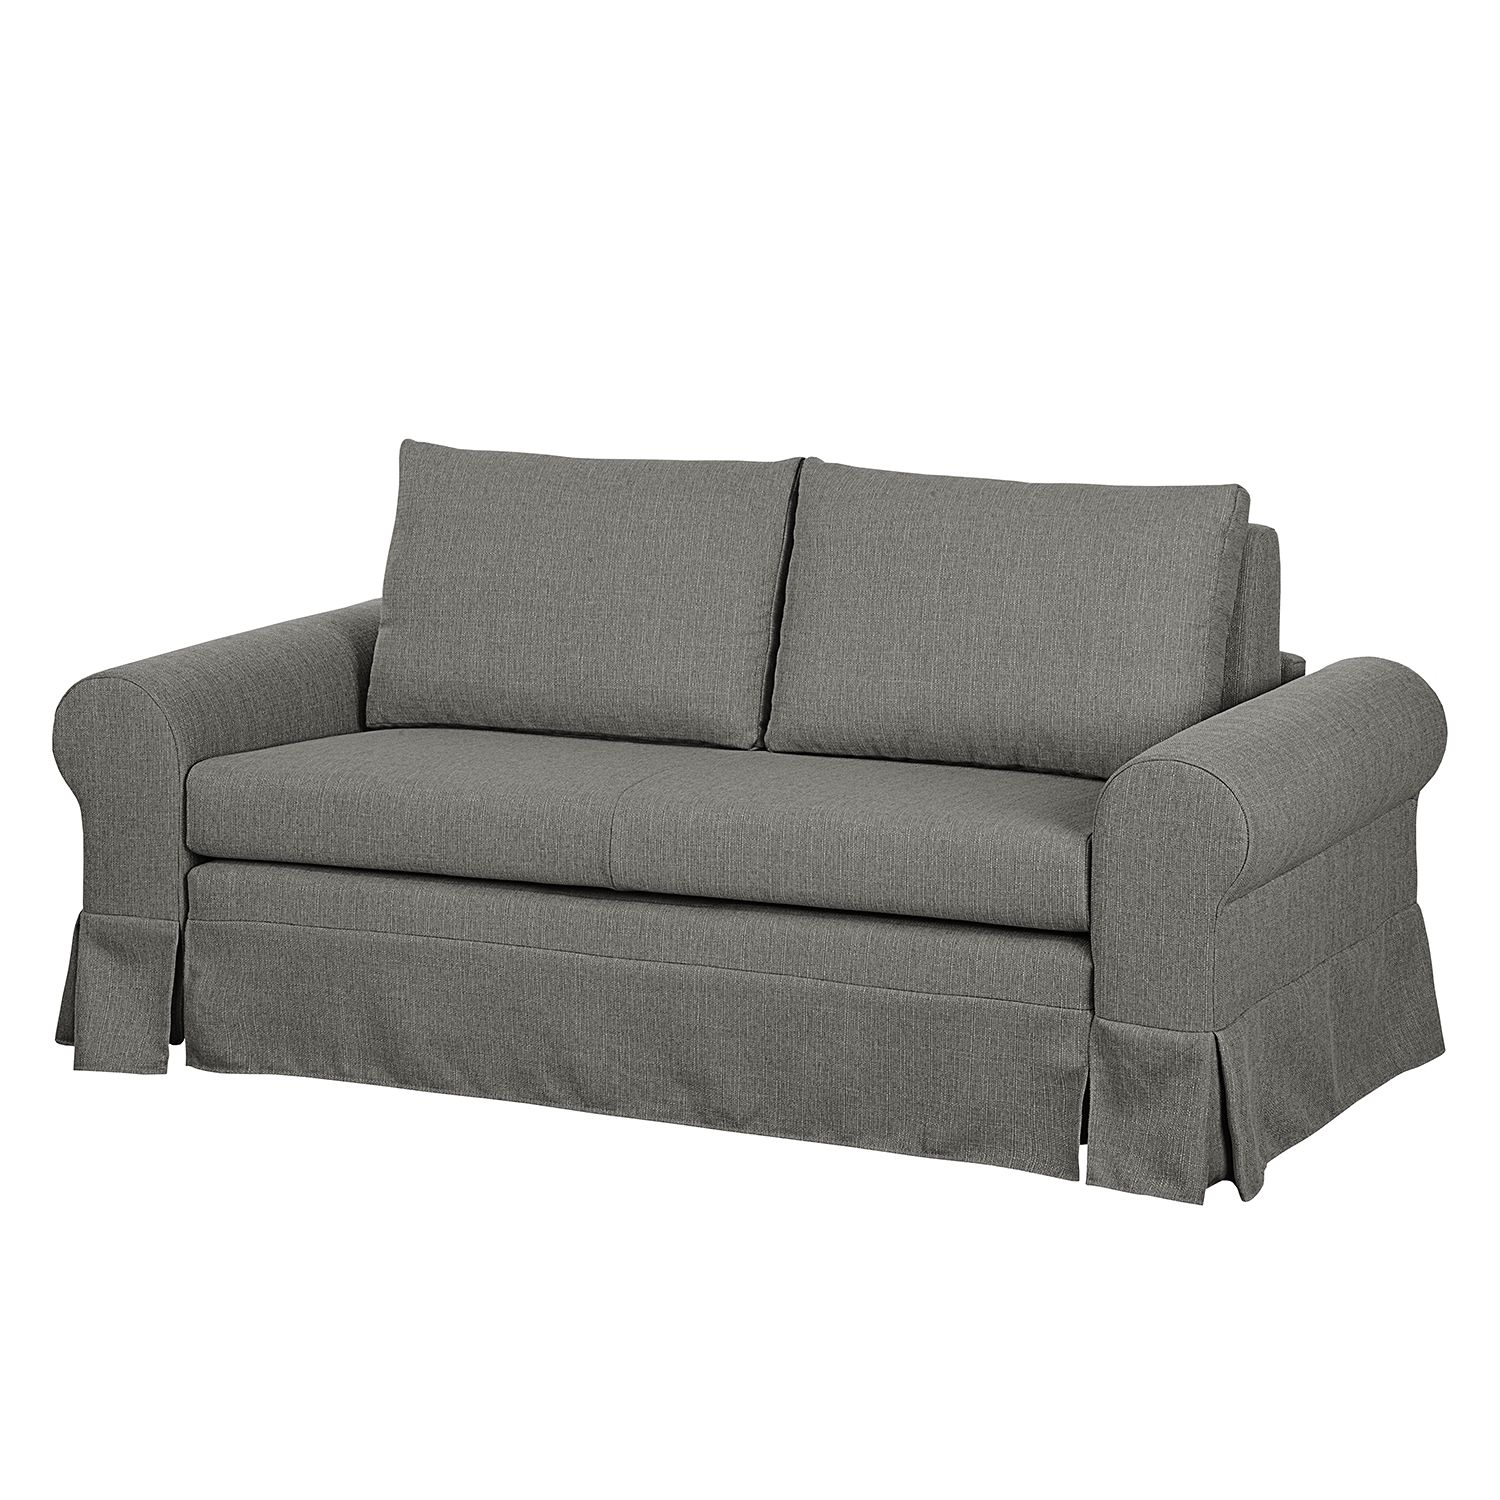 Canapé convertible Latina XIII Tissu - Gris - 185 cm, mooved